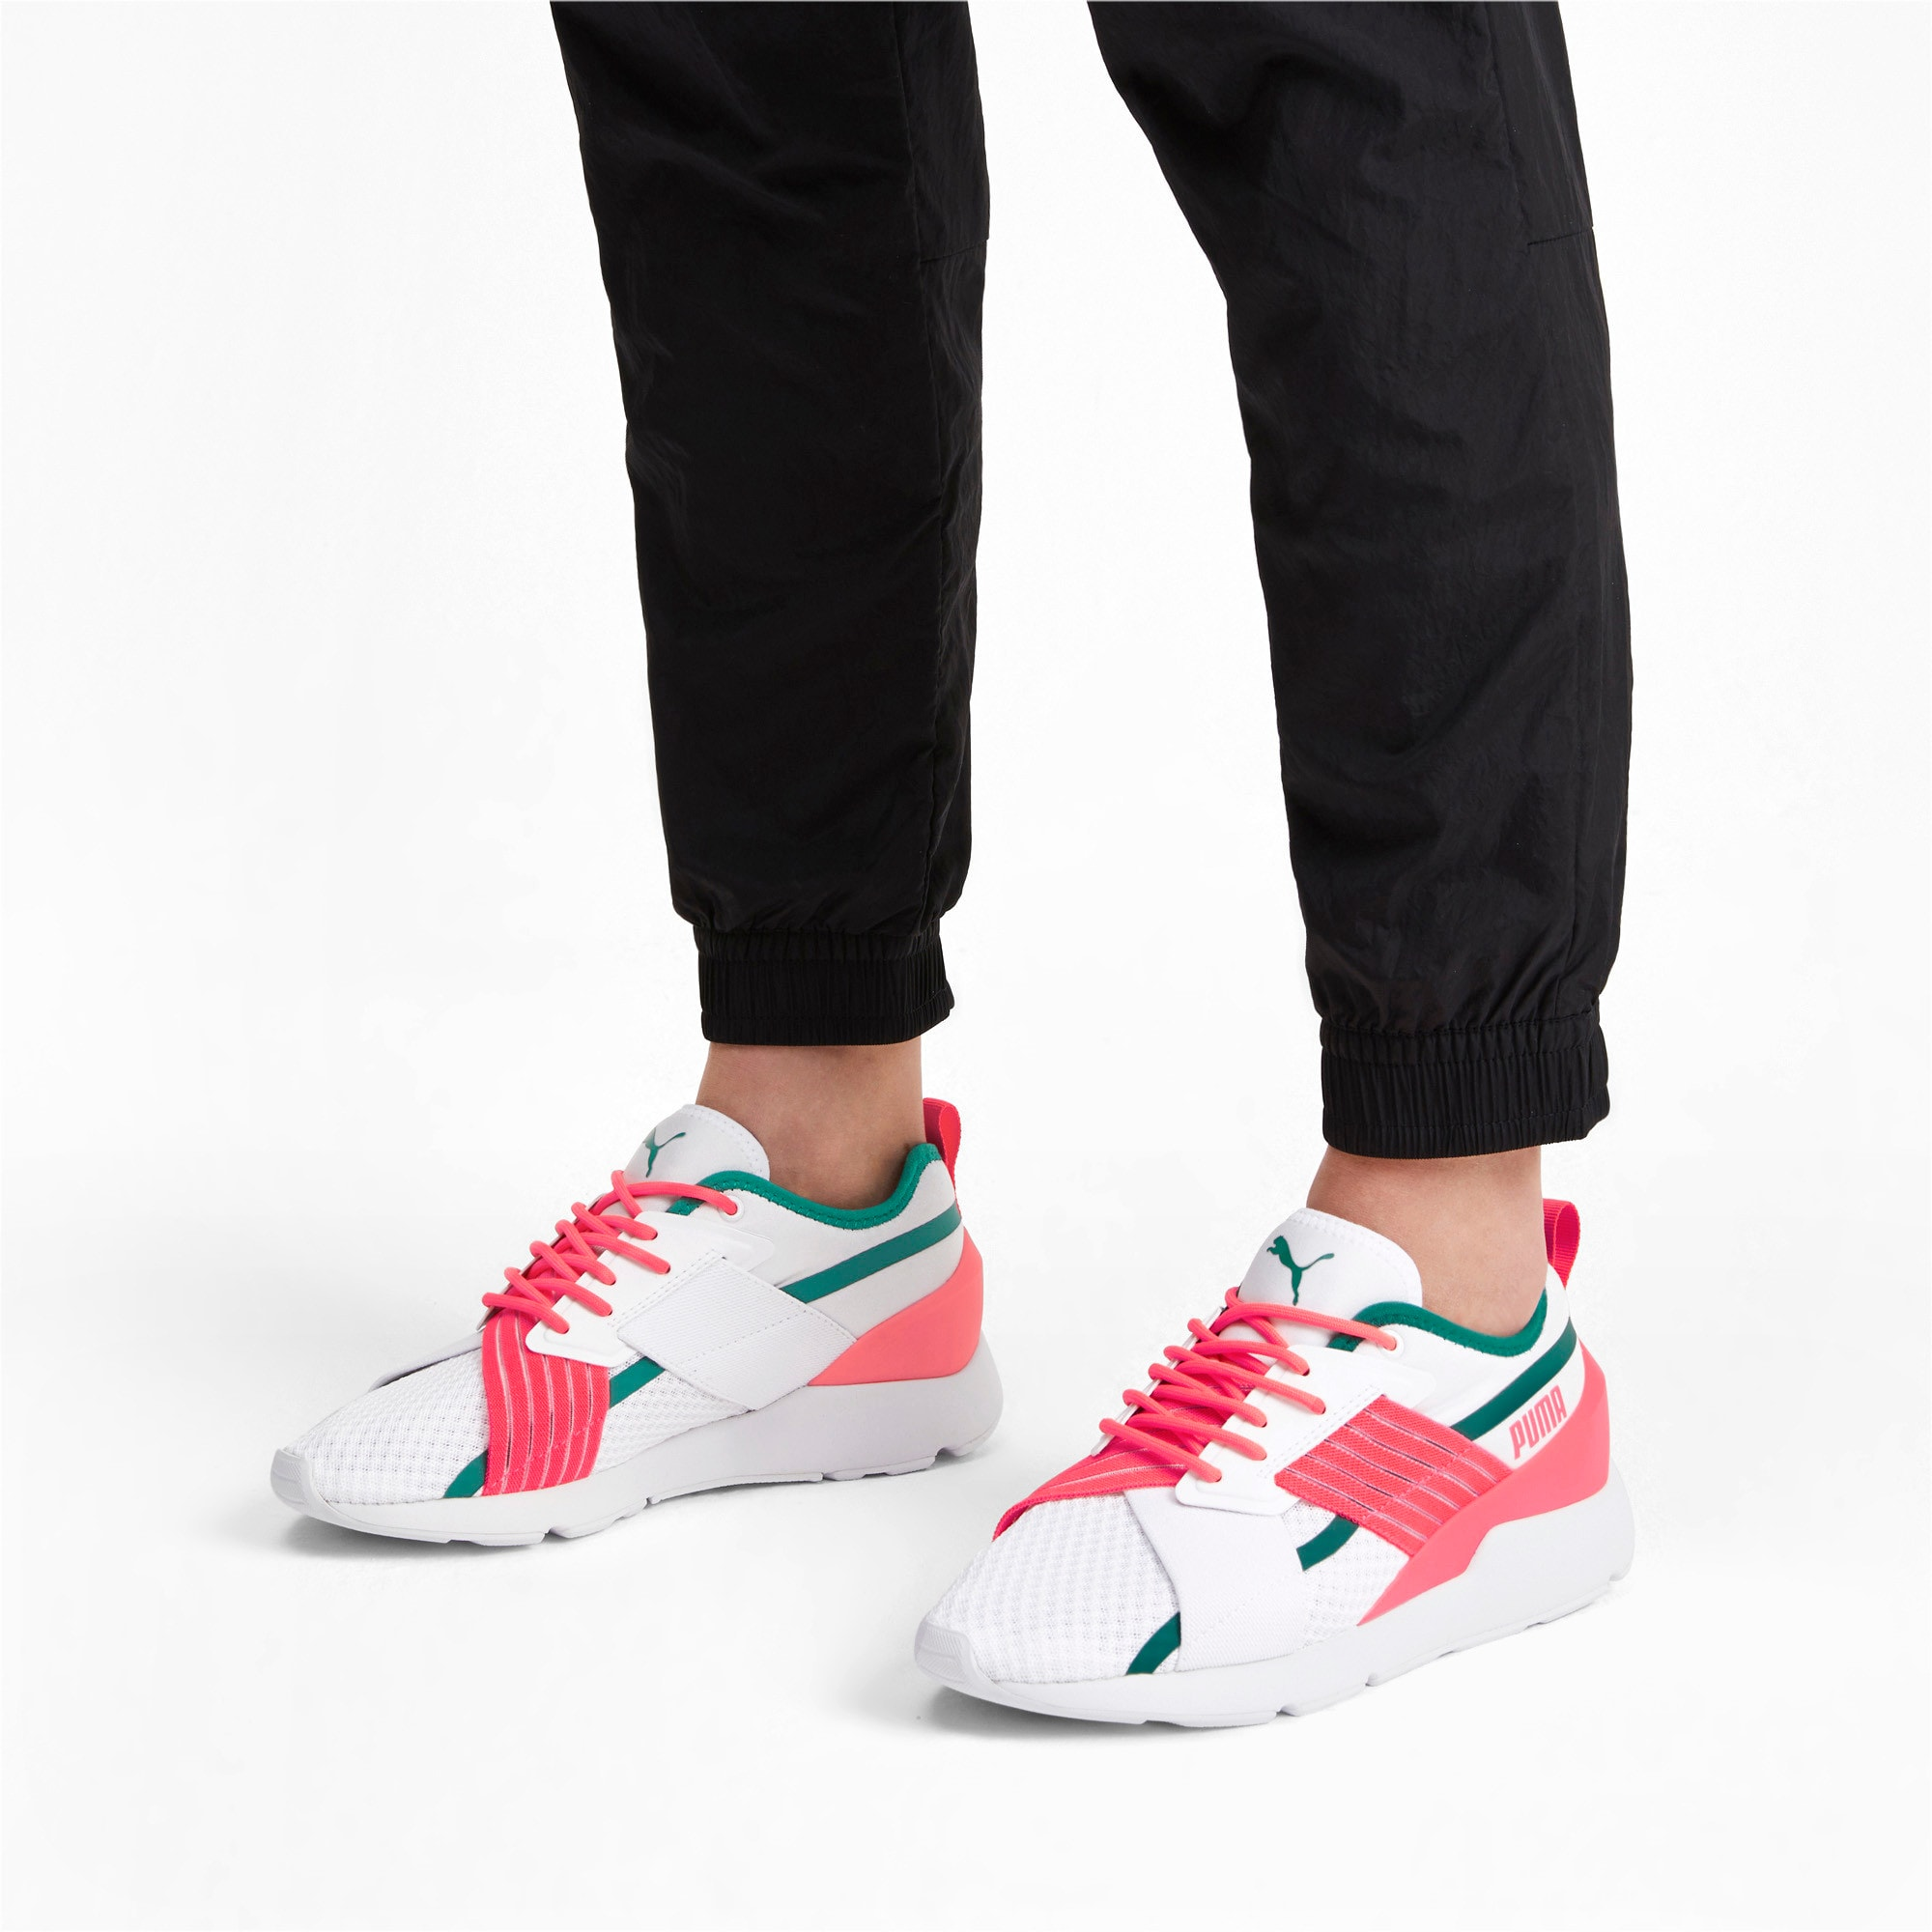 Thumbnail 3 of Muse X-2 Women's Trainers, Puma White-Pink Alert, medium-IND